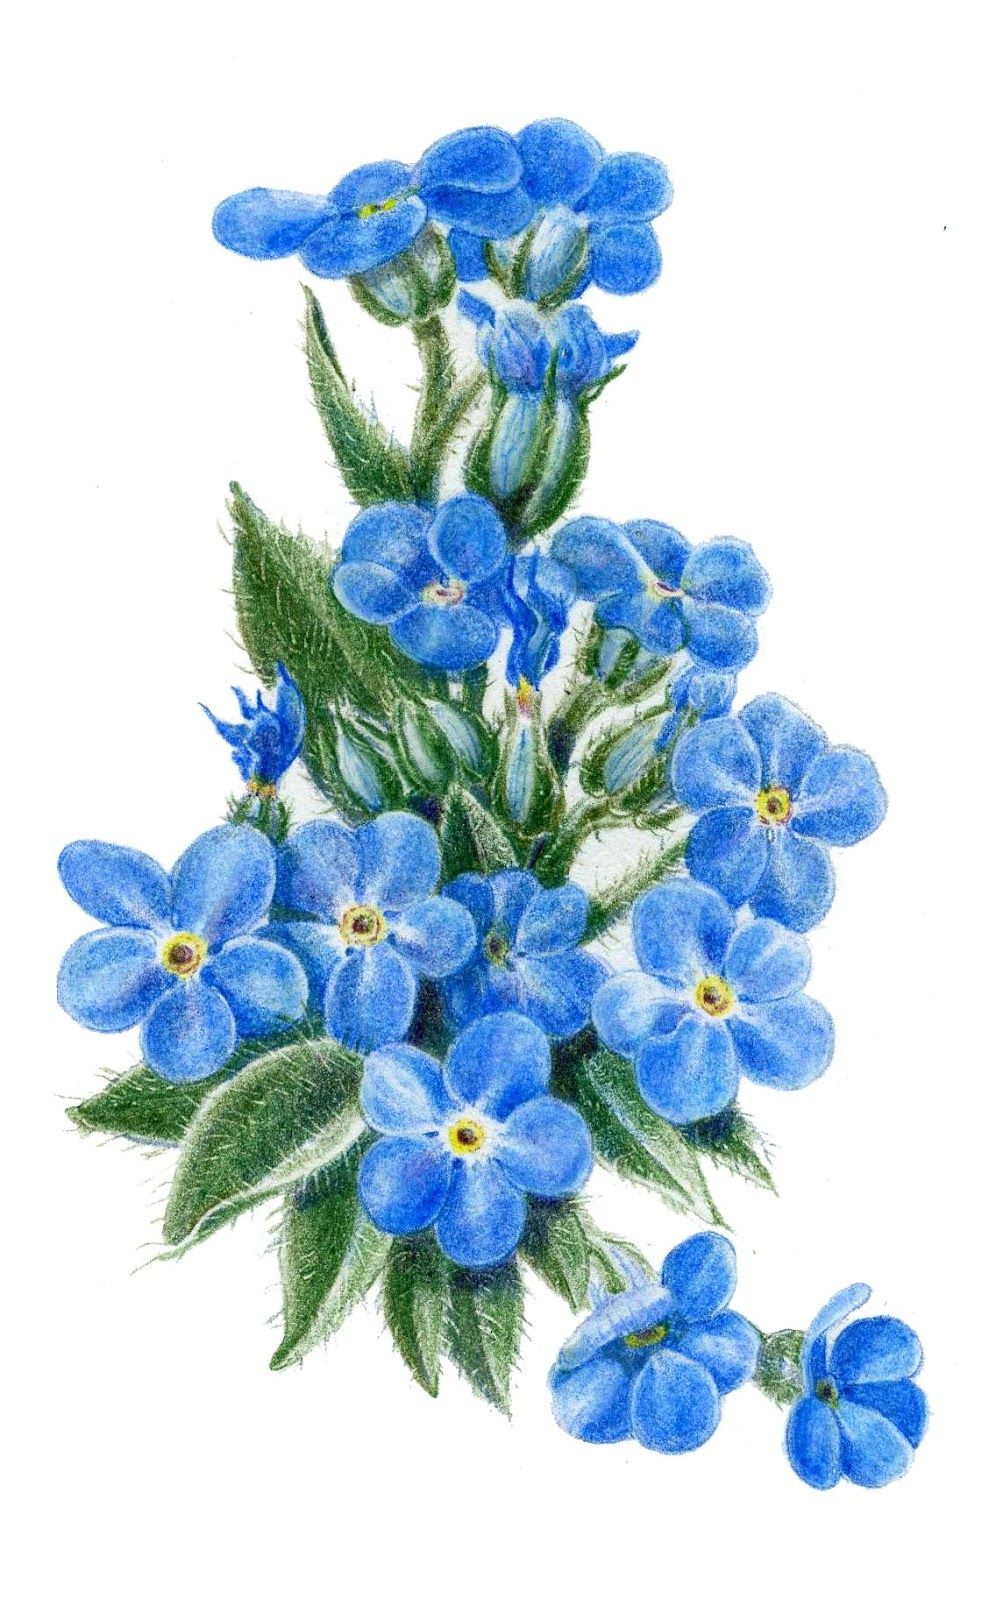 forget me nots illustration - Google Search